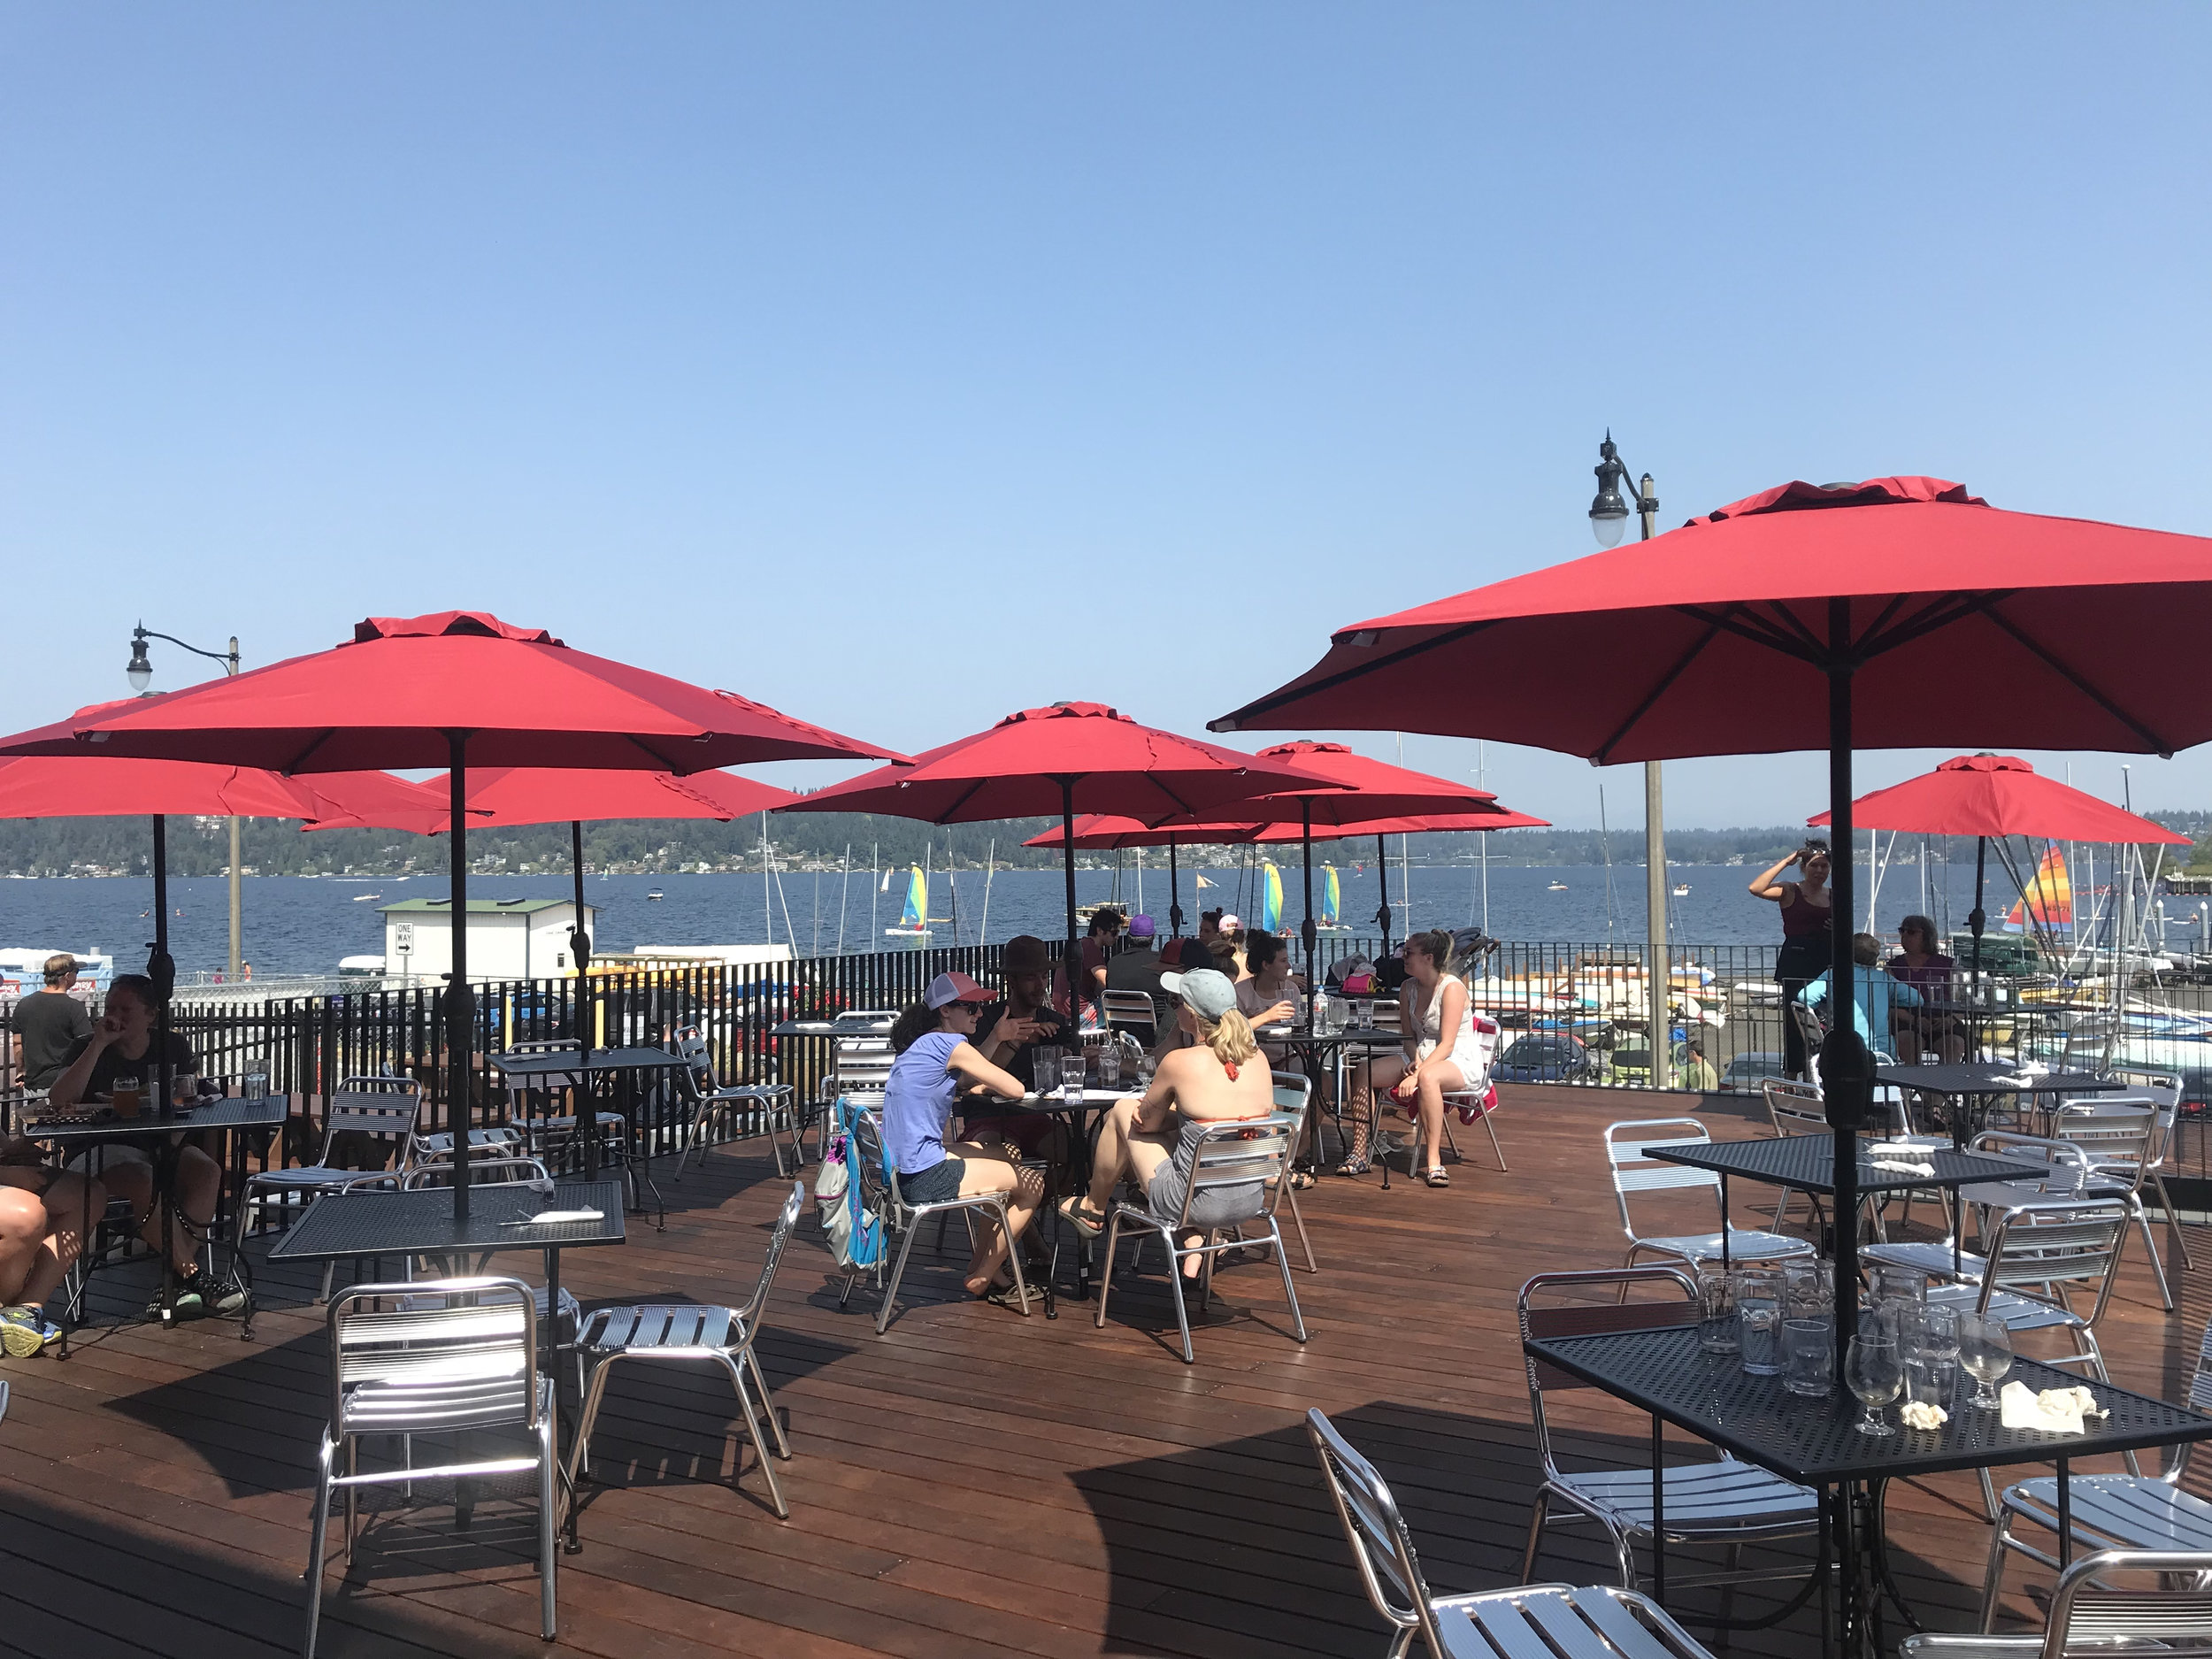 At long last, we are having our Grand Opening! Stop by for hand-crafted food, beer & local wine. Magnuson Cafe & Brewery features a 2,000 sq ft deck overlooking Lake Washington.